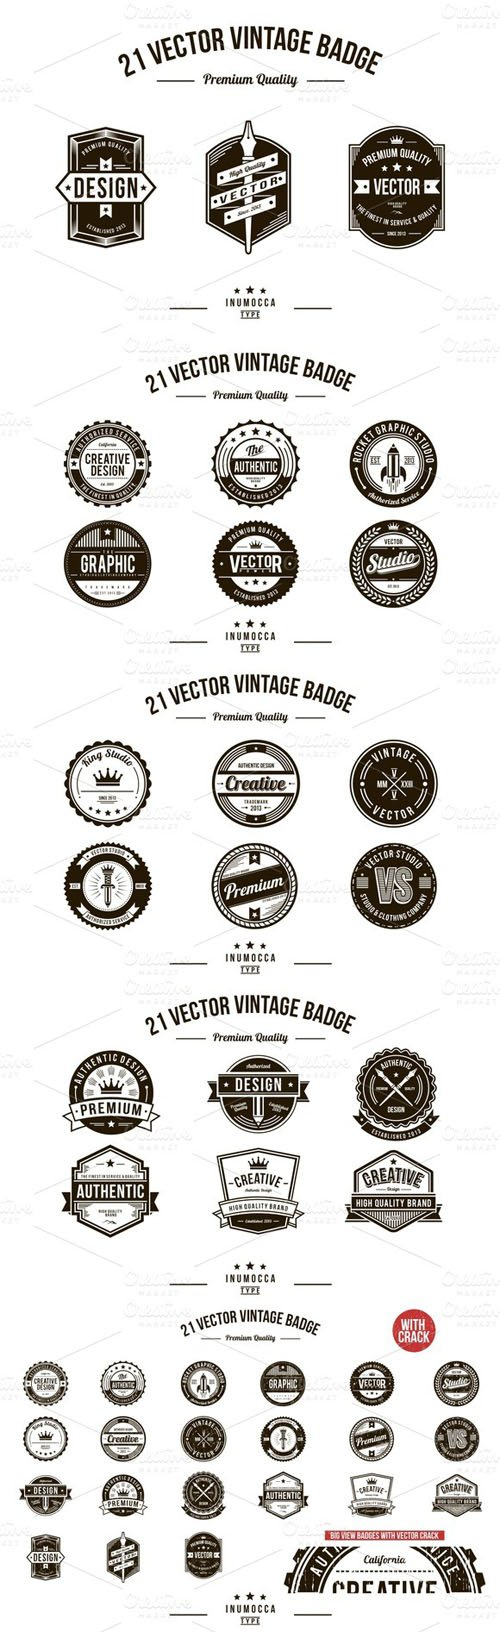 21 Vintage Badges (CLEAR & CRACK) - Creativemarket 13142